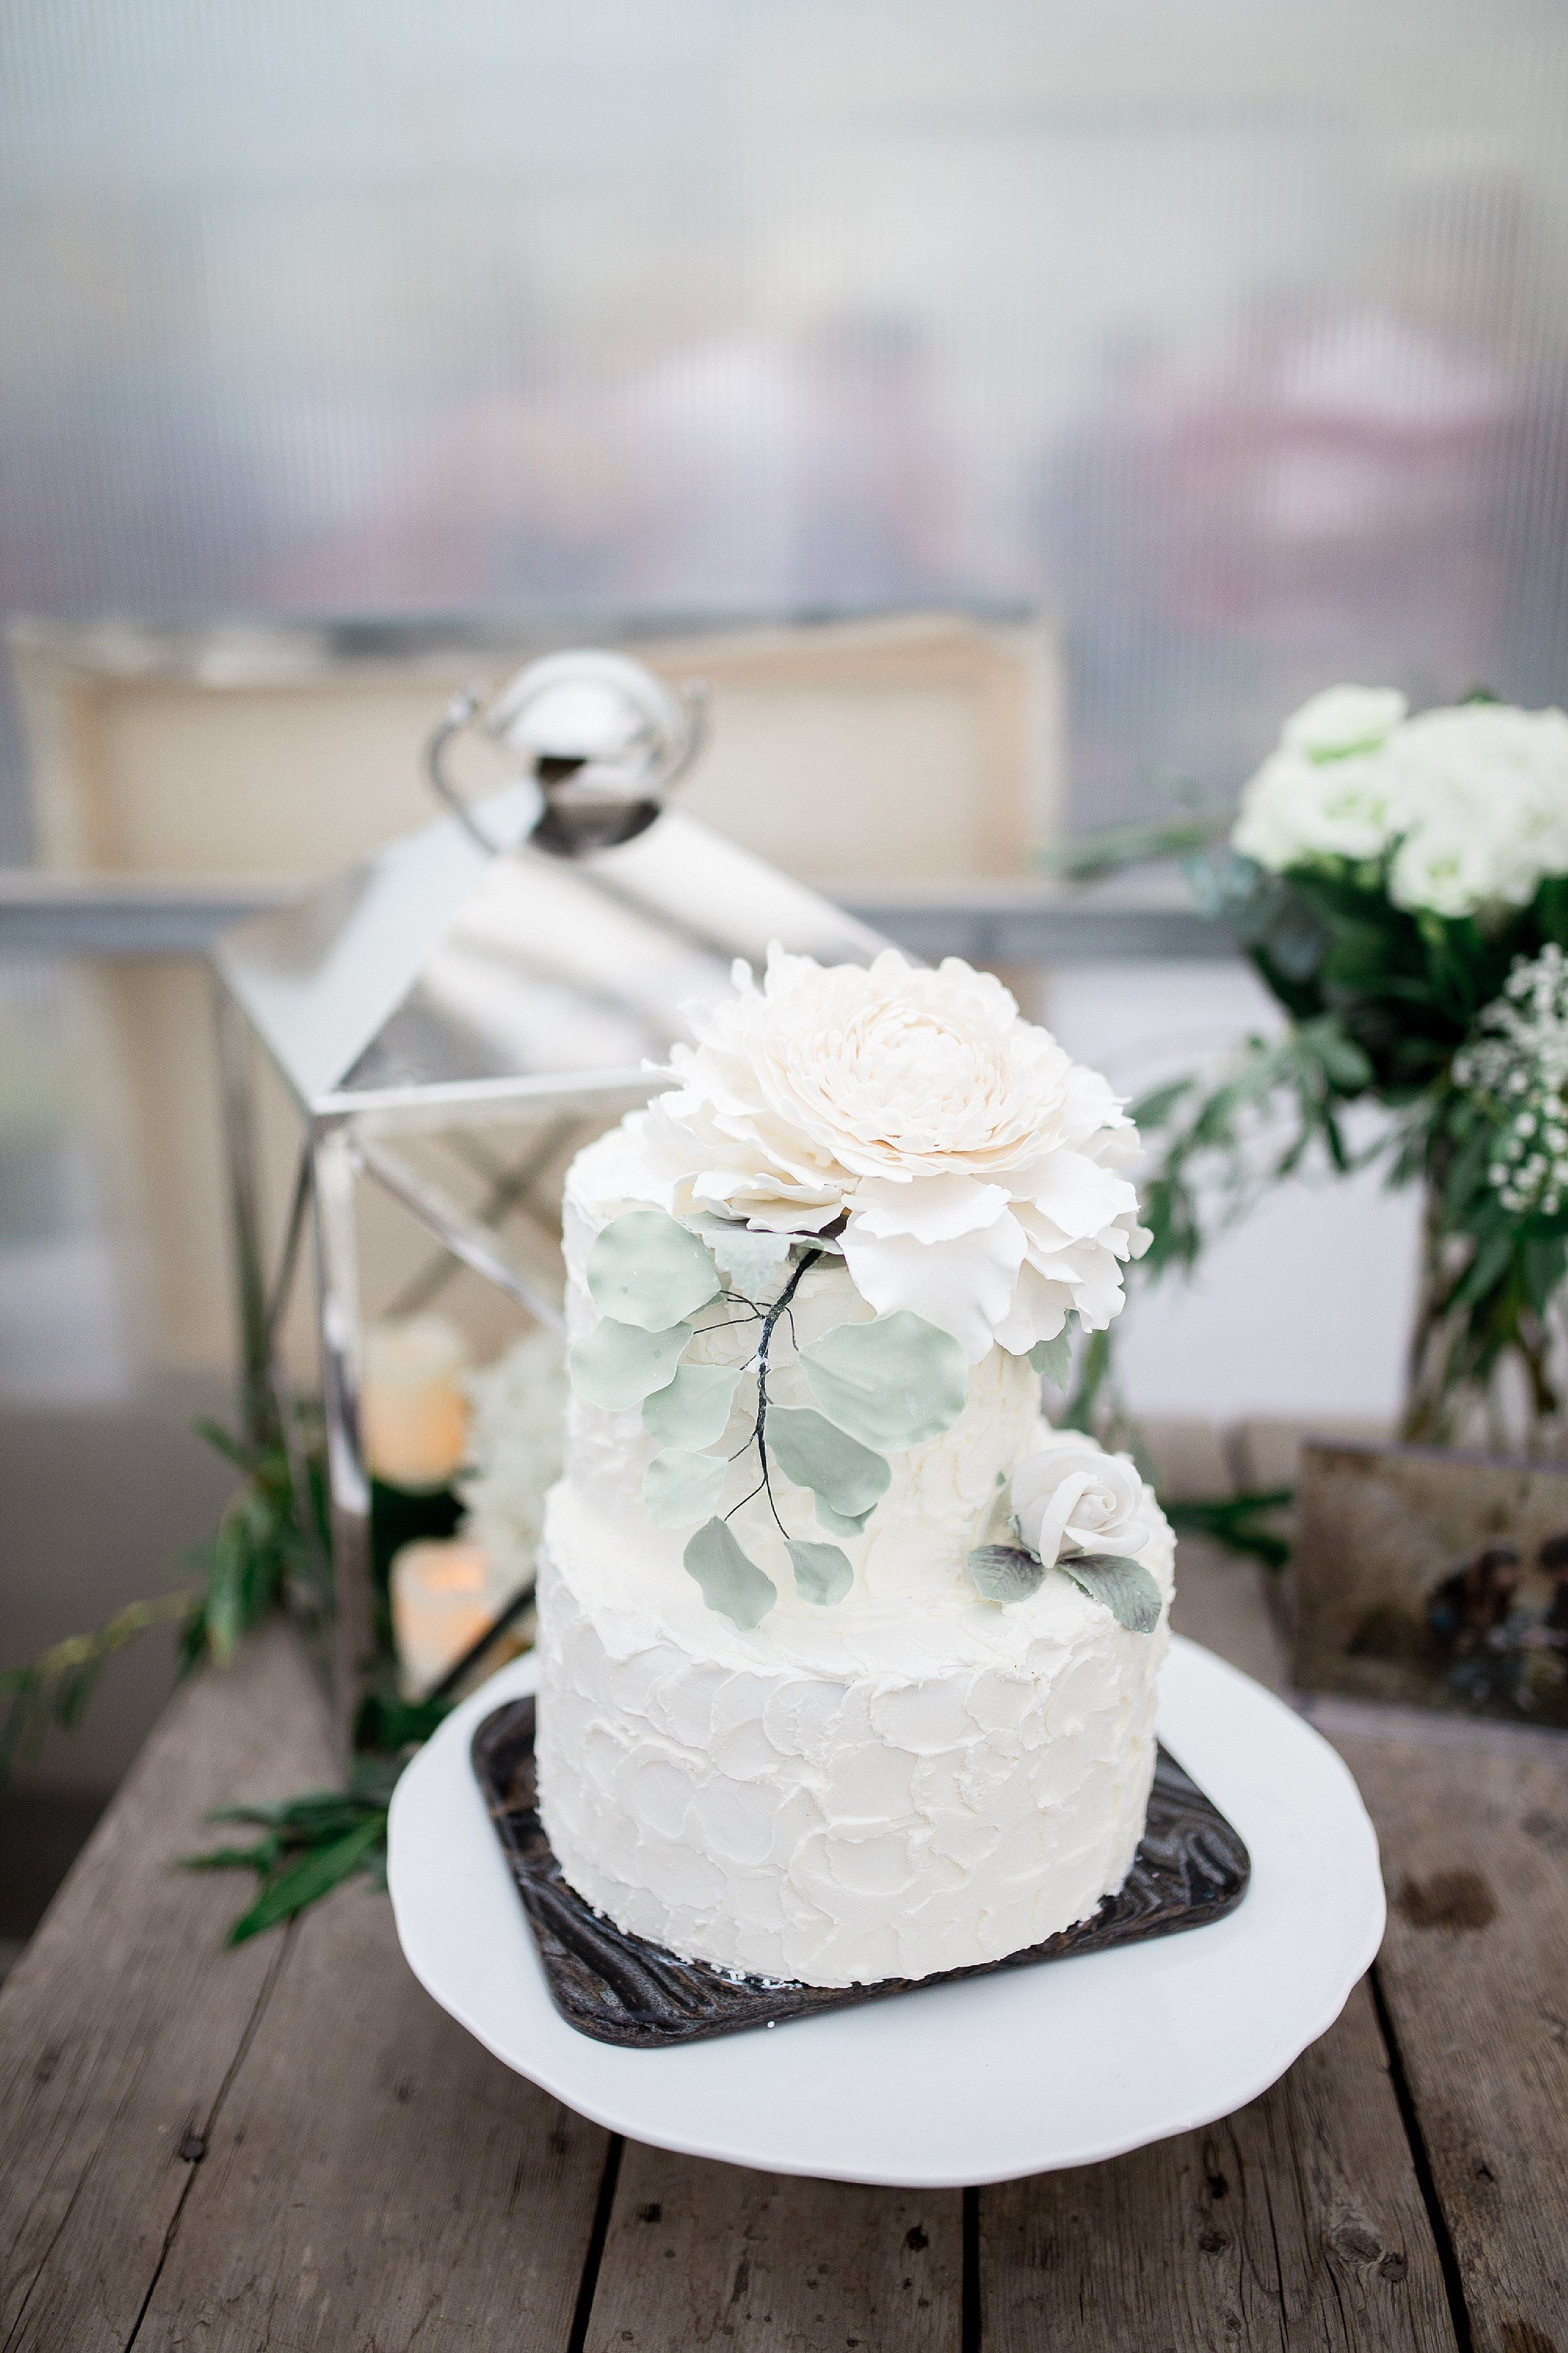 Simple wedding decoration ideas for reception  Simple white wedding cake with flowers  Greenhouse wedding